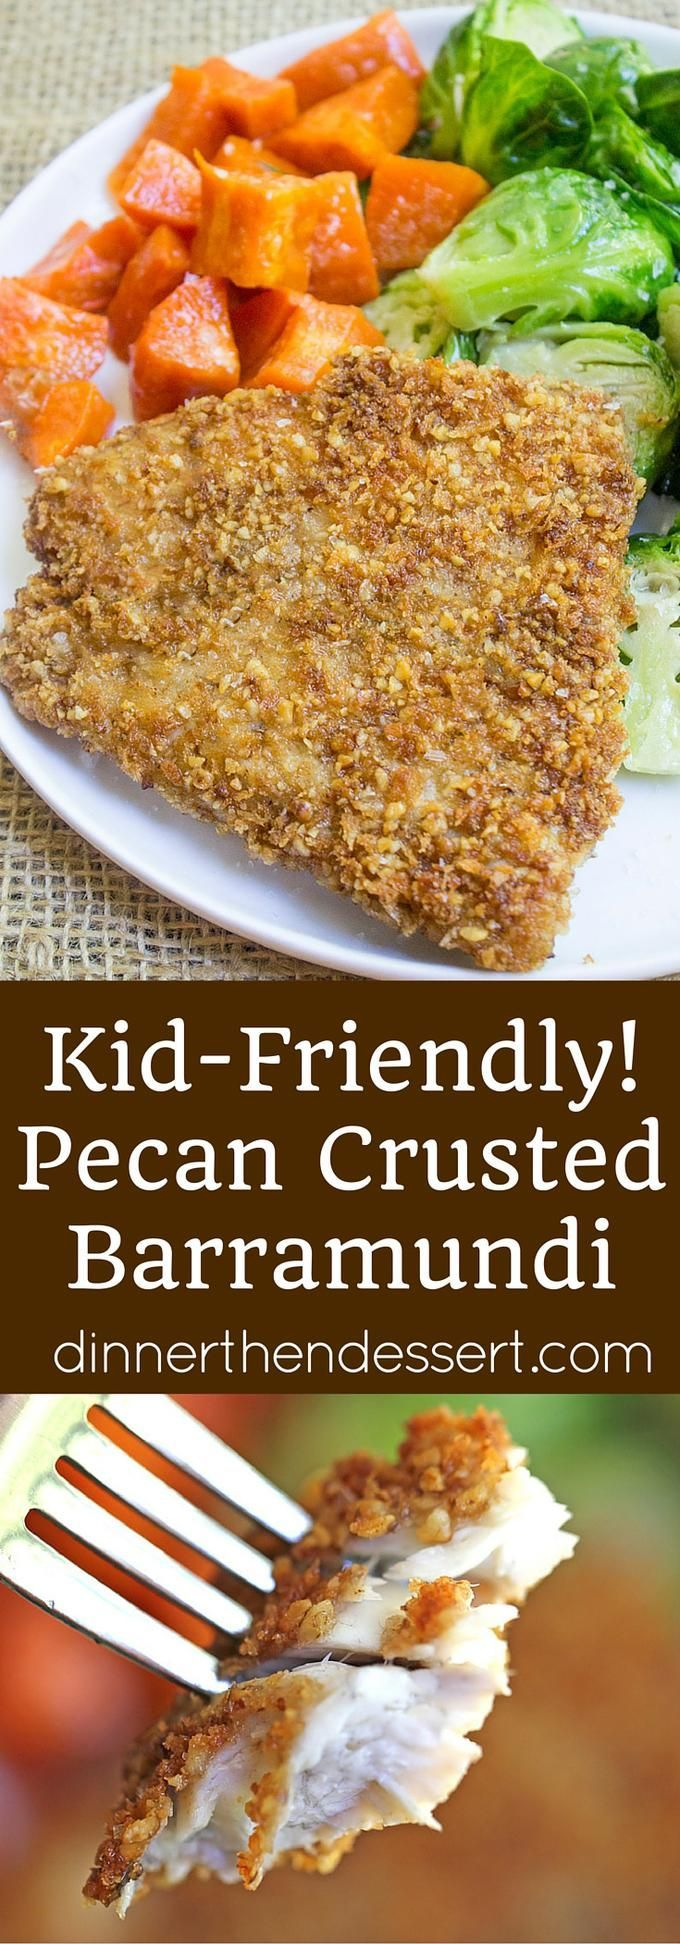 Pecan Crusted Barramundi is a breeze to make with a mixture of pecans and panko, this flaky white fish shines with just a few minutes of prep! TheBetterFish AD: